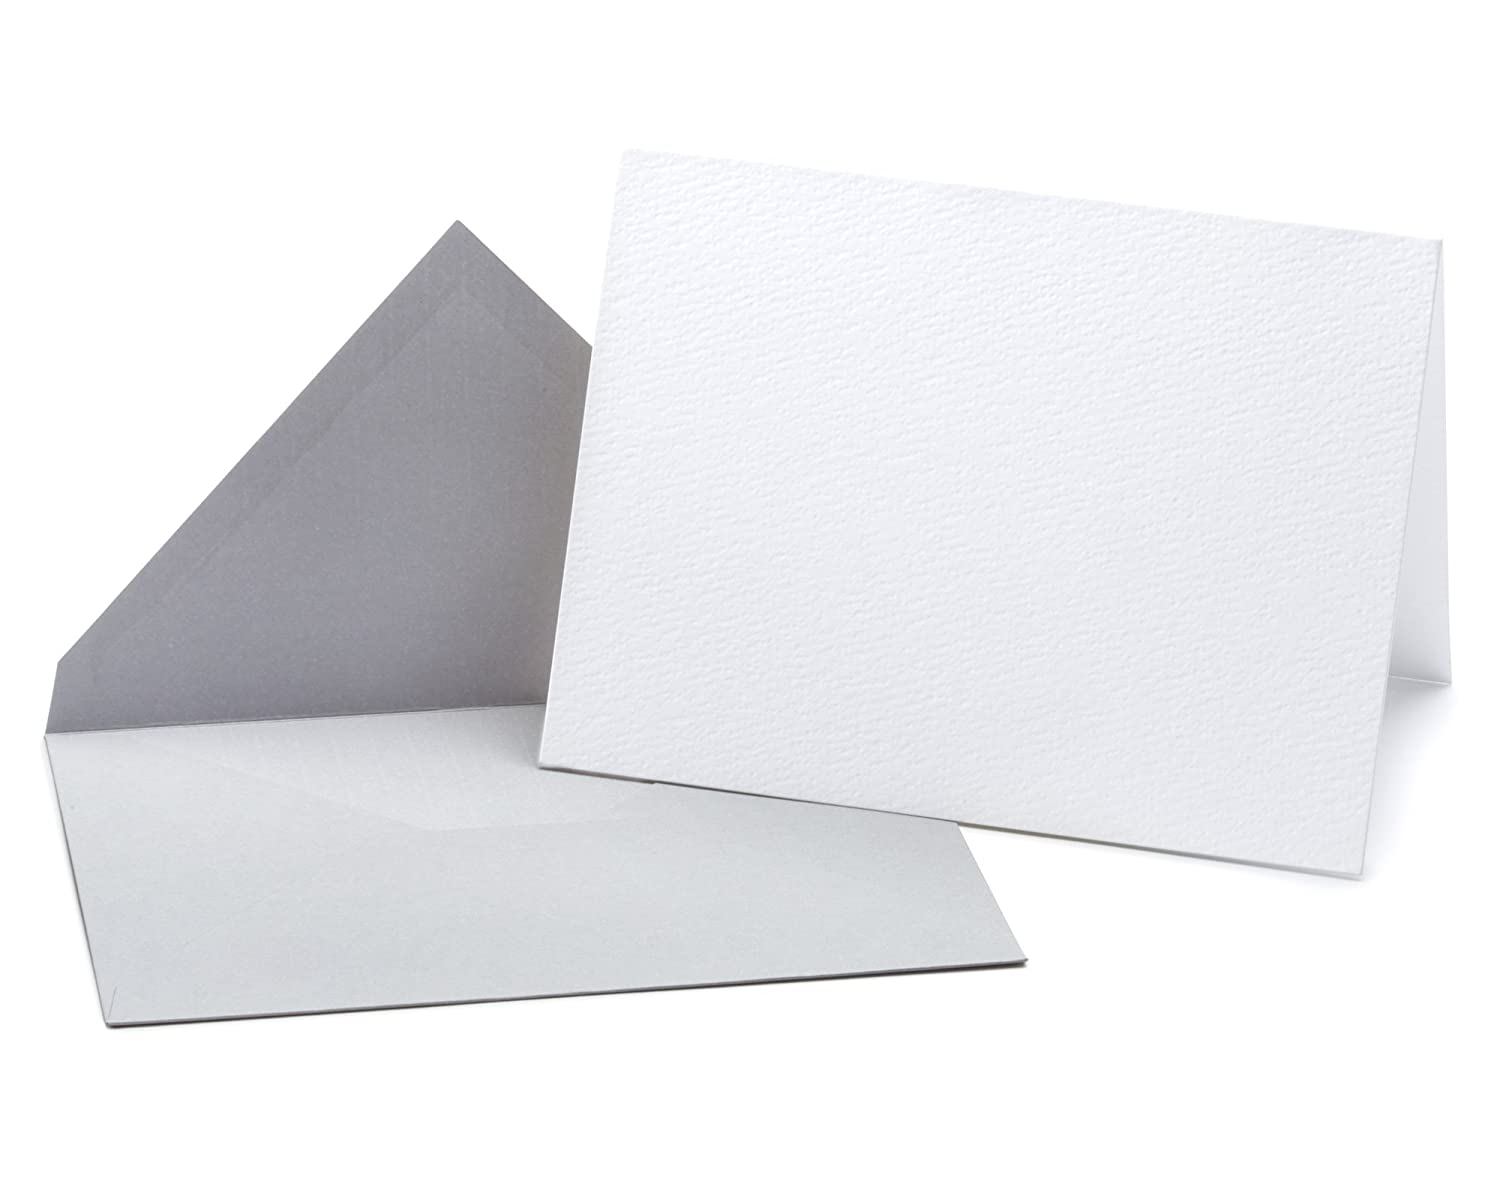 20 Blank Cards and Envelopes - Opie's Paper Company Opie' s Paper Co. 4336867748